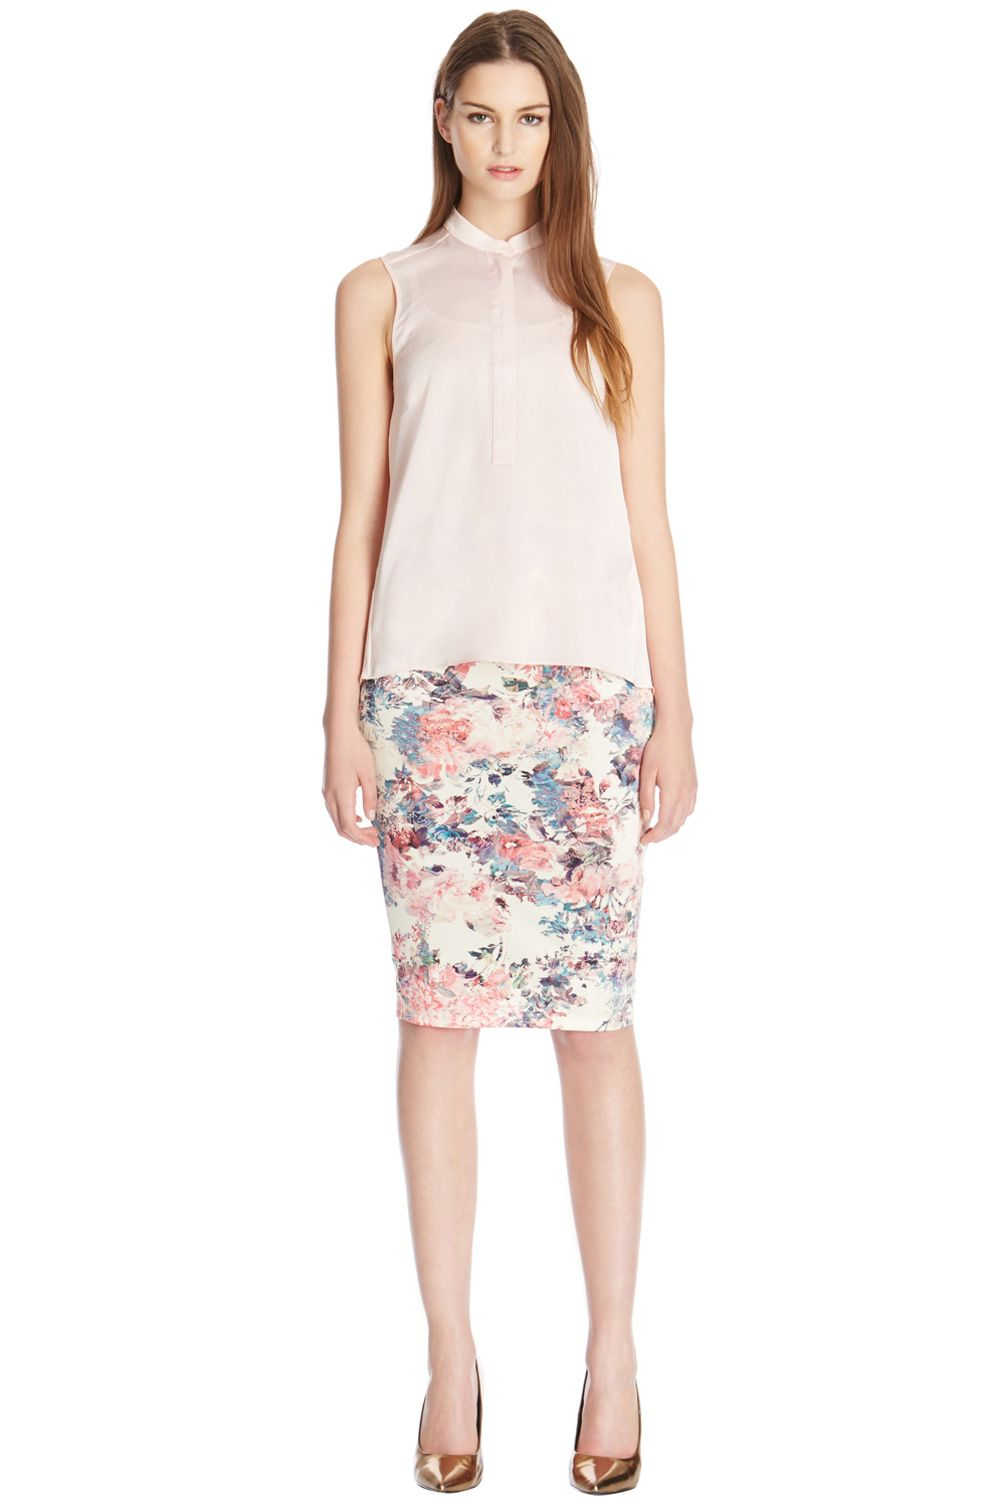 Scuba floral print co-ord skirt